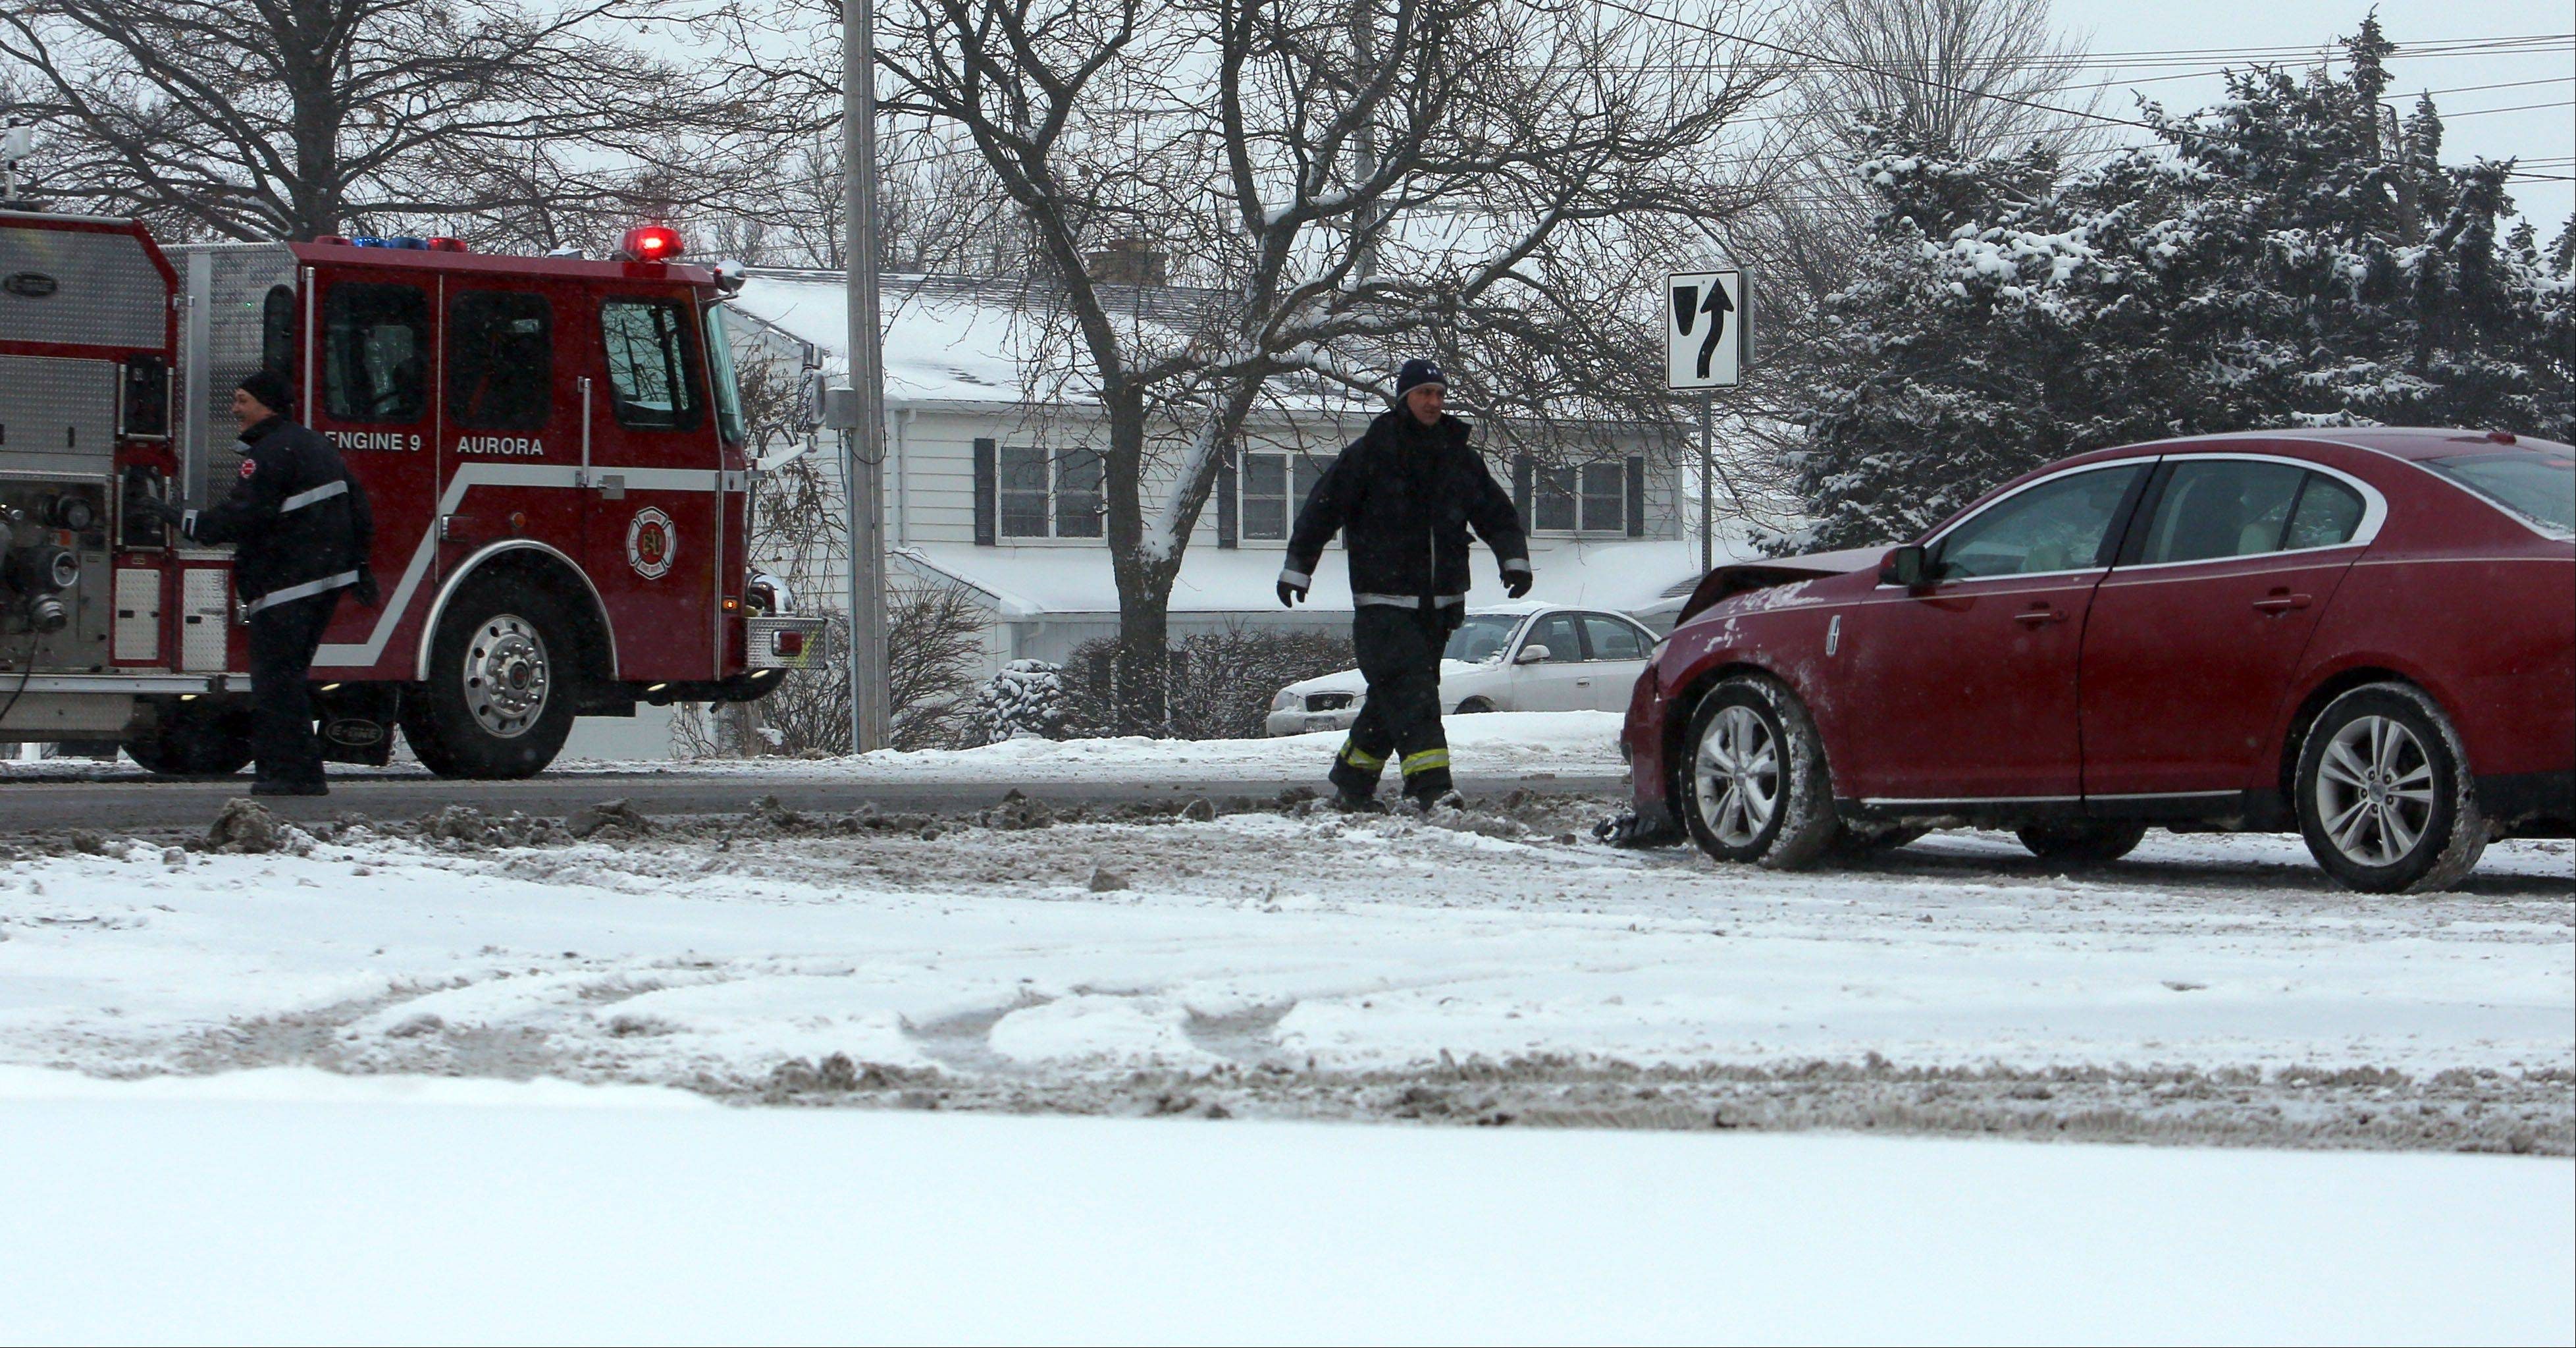 Aurora firefighters move a car out of traffic after a car accident on northbound Eola Road in Aurora on Thursday.